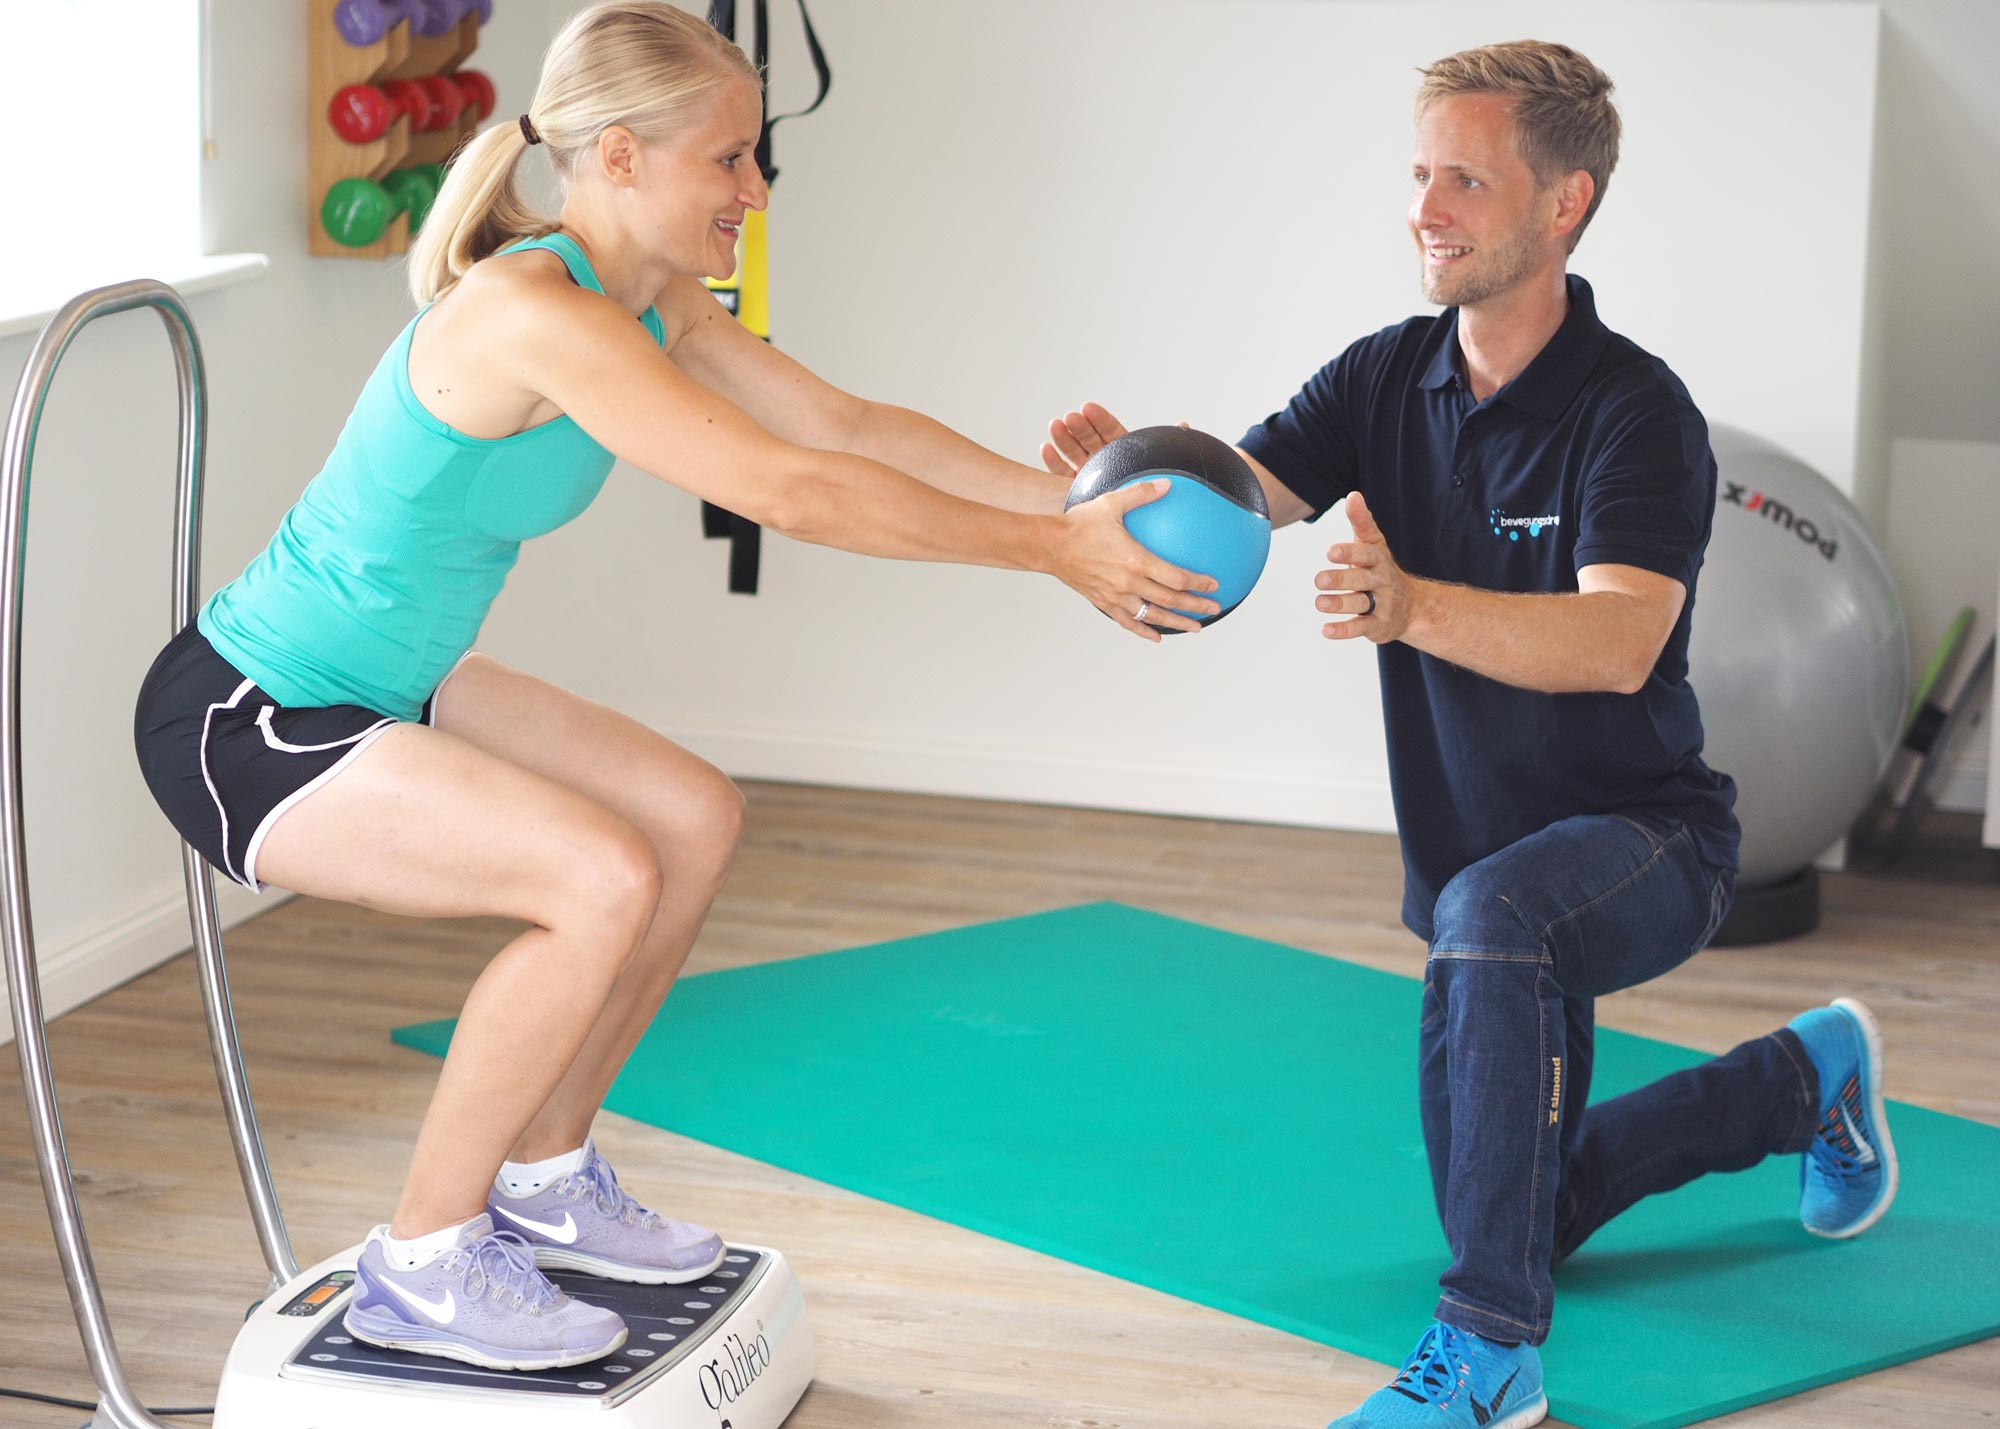 Personal_Trainer_Sylt_Training